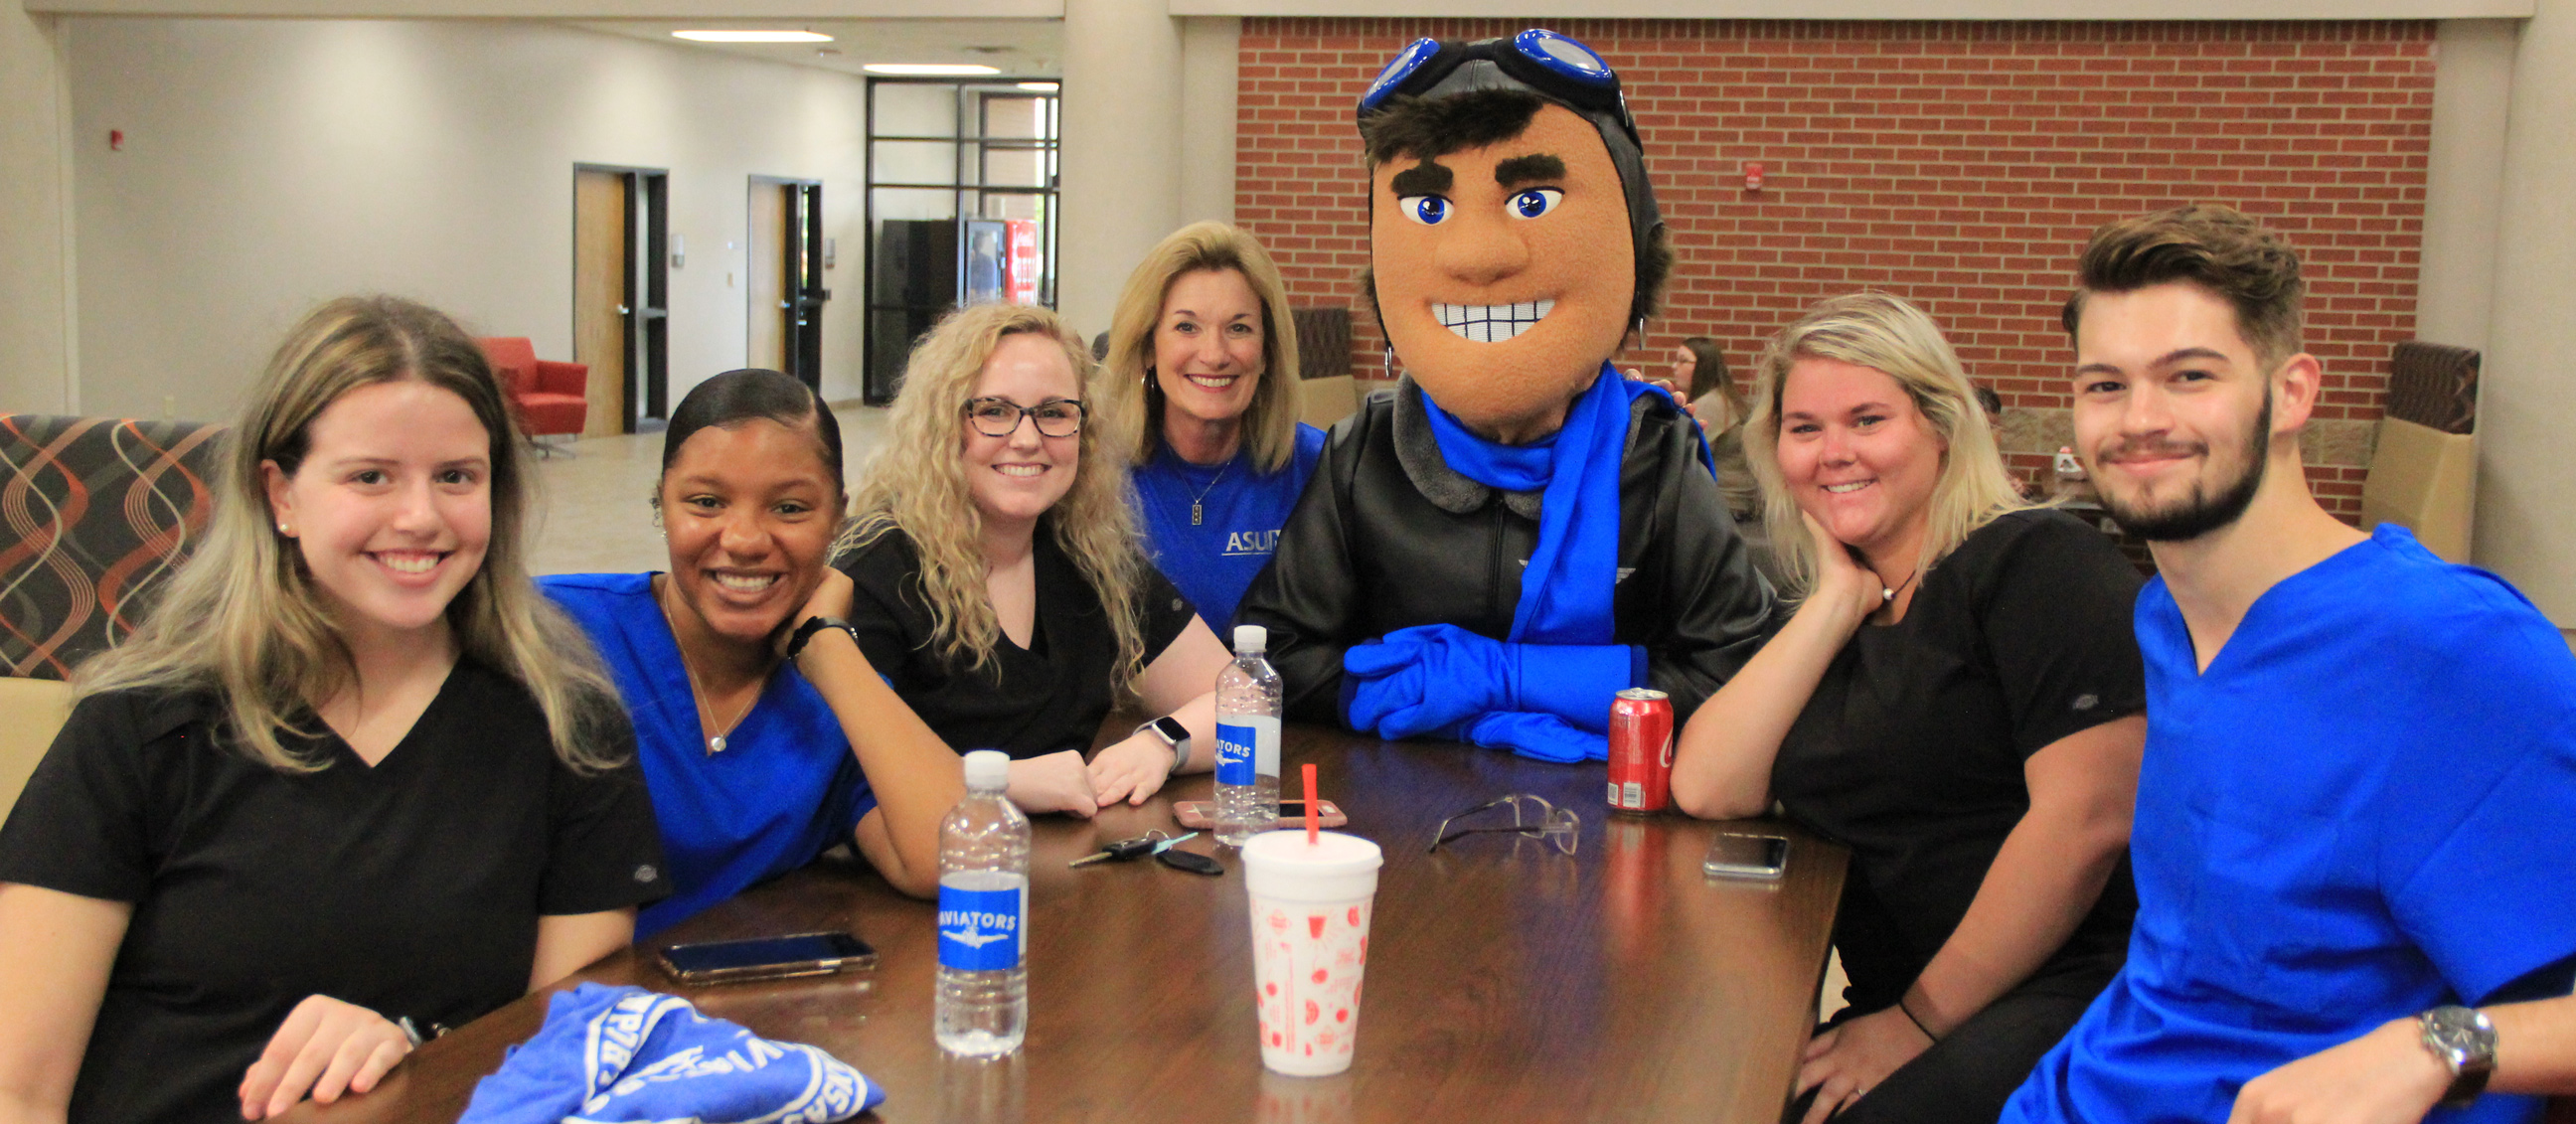 Nursing students hanging our with ACE and the chancellor